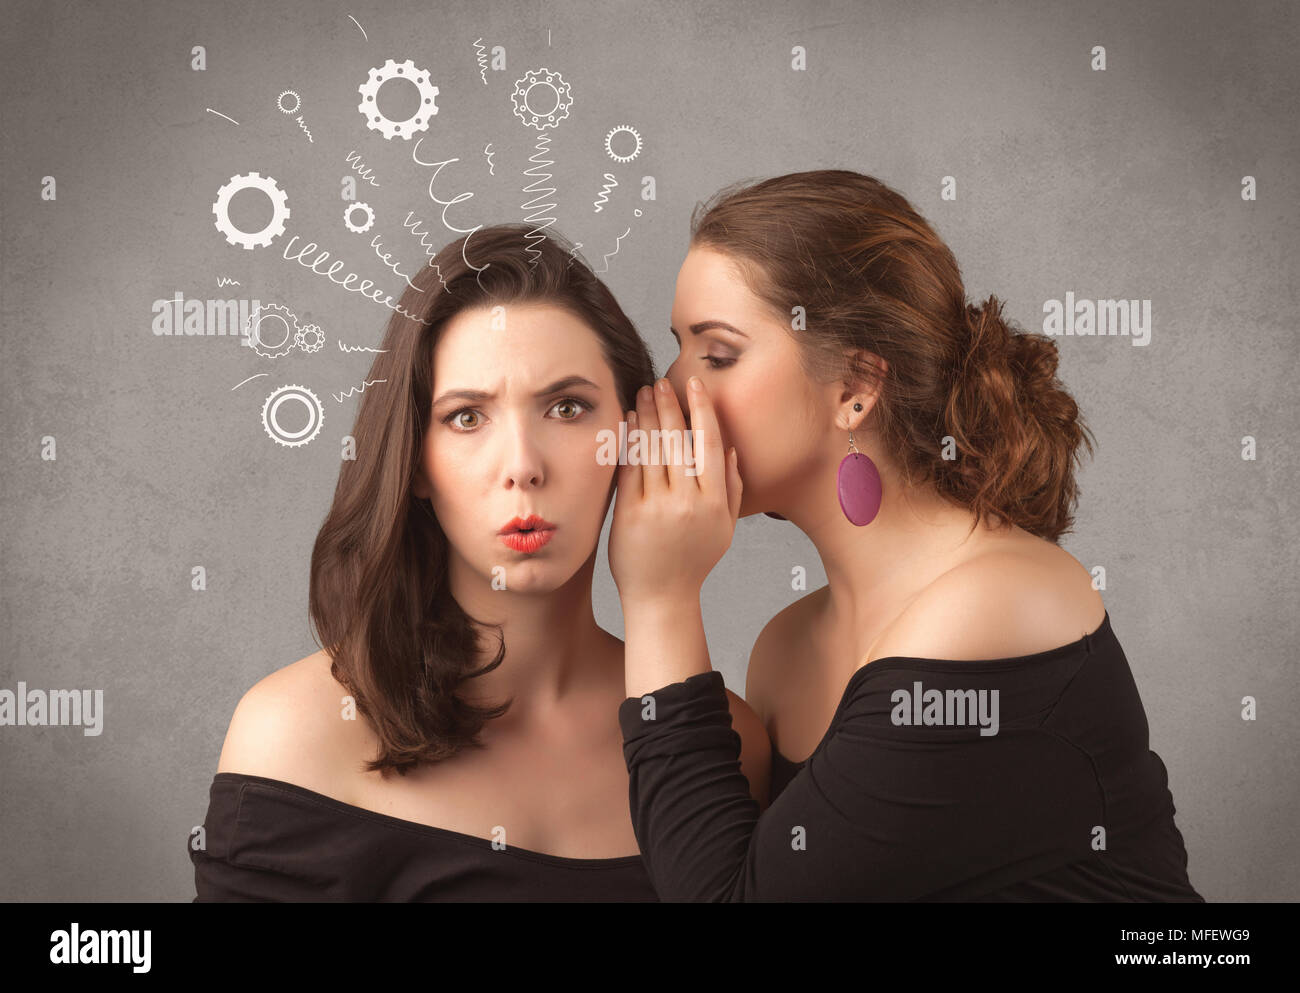 Two girlfriends in elegant black dress sharing secrets with each other concept with drawn rack cog wheels and spiral lines on the wall background. - Stock Image